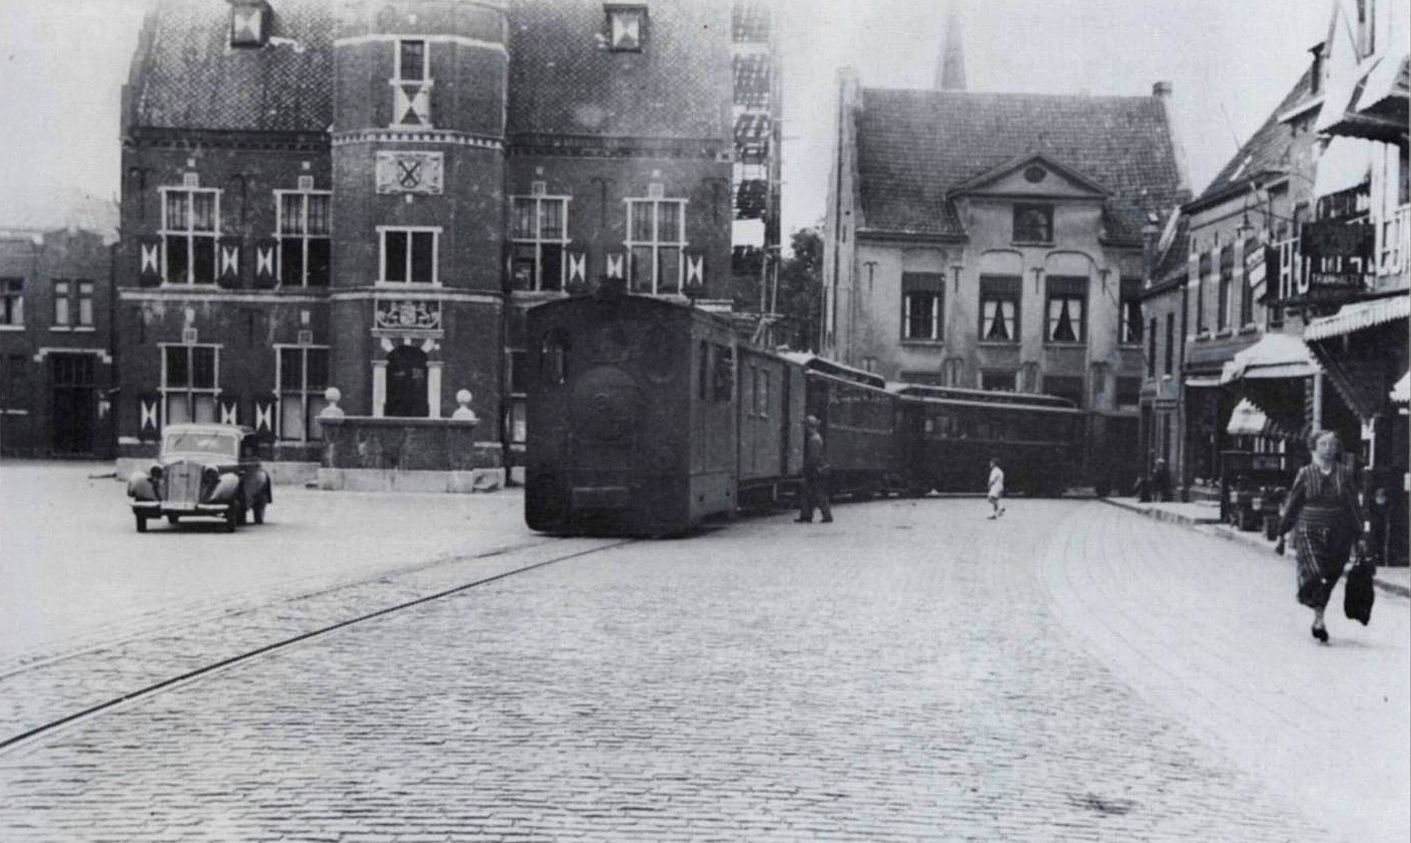 mbs-stationGennep1940-1945